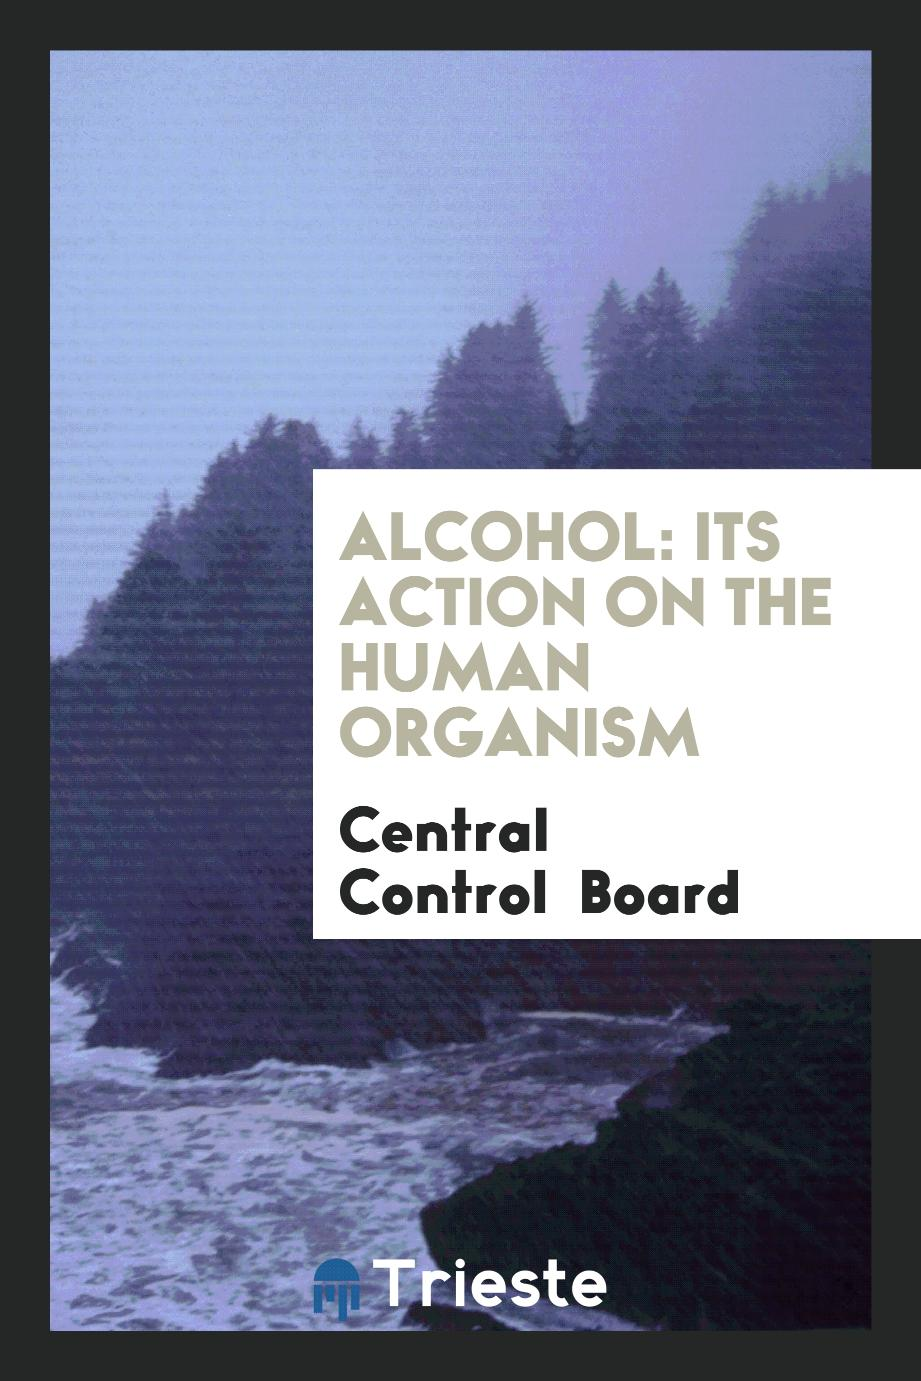 Alcohol: Its Action on the Human Organism